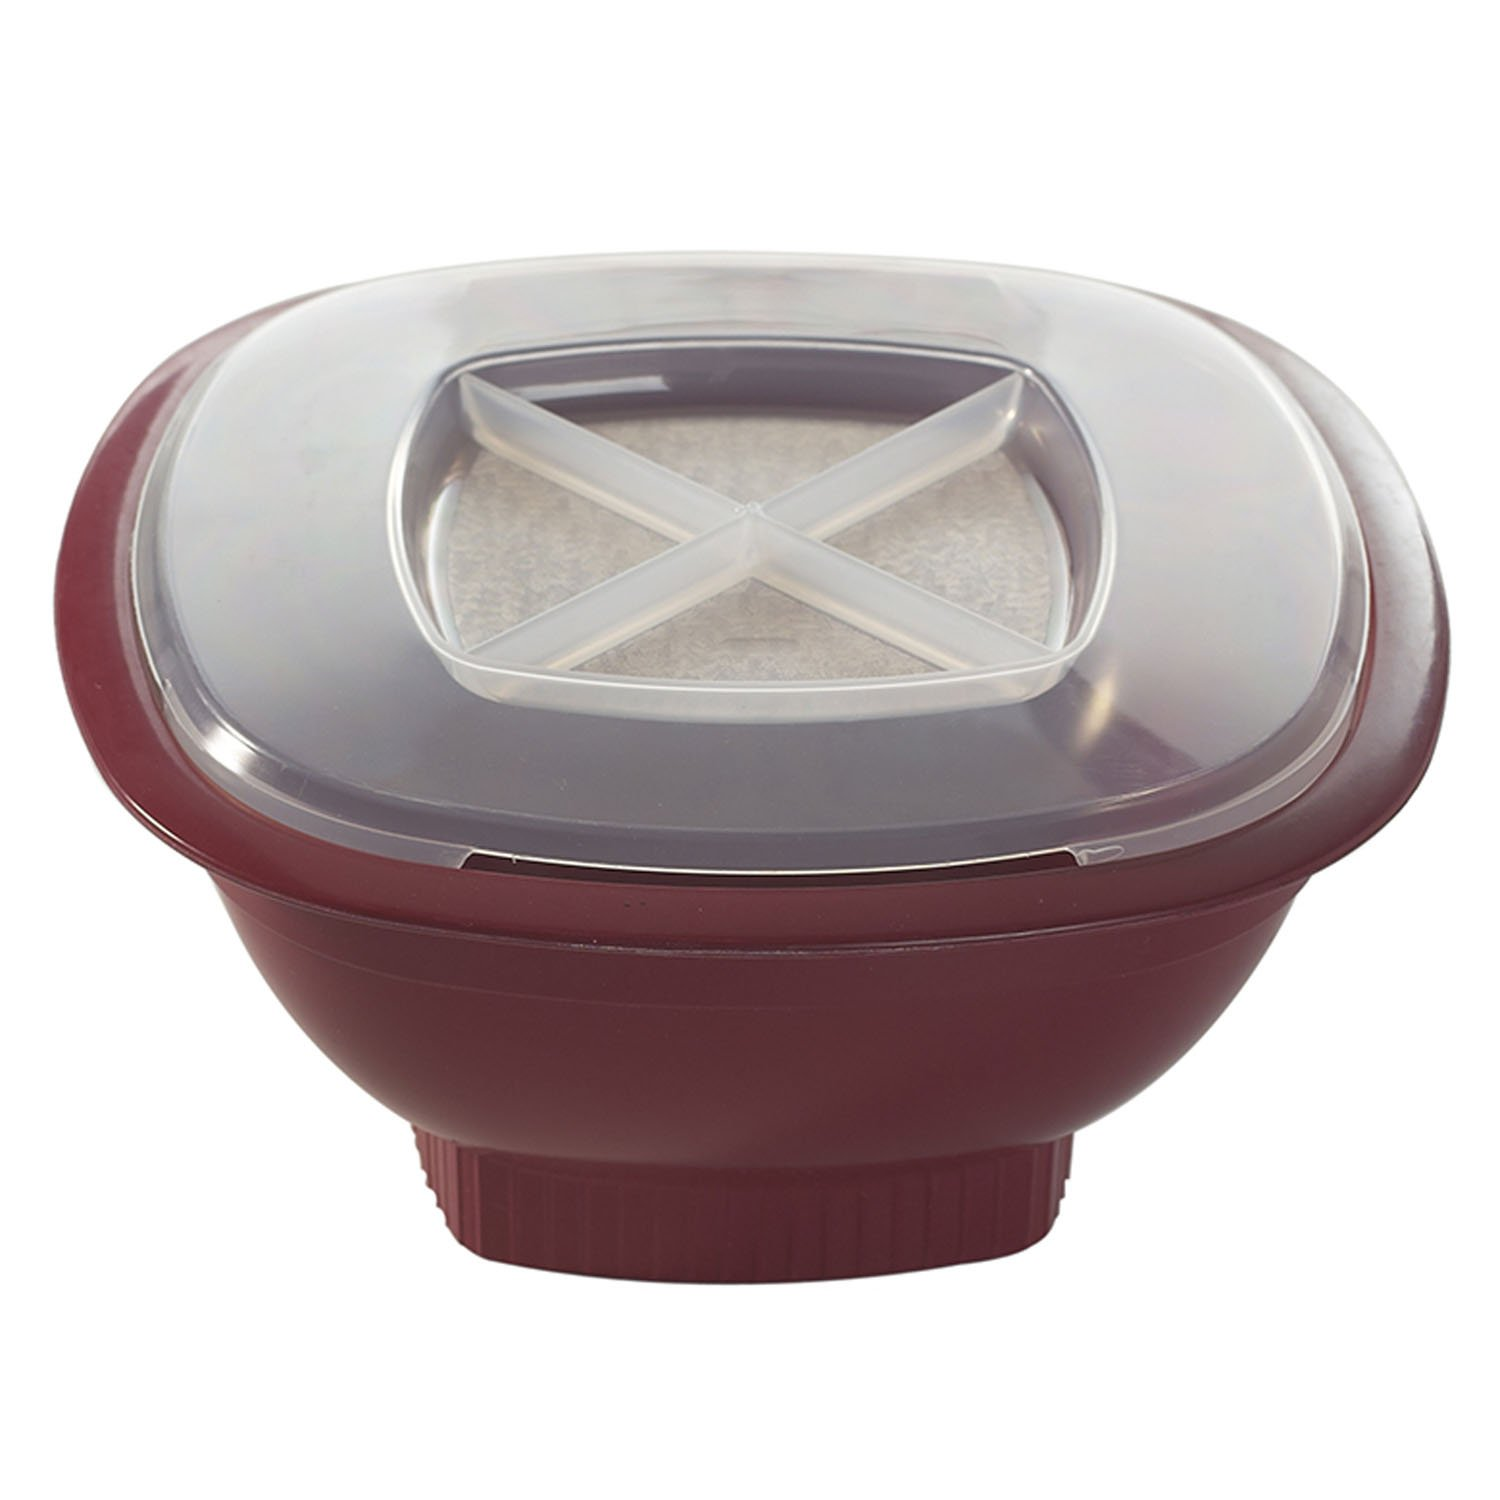 Nordic Ware Microwave Popcorn Popper, Red by Nordic Ware